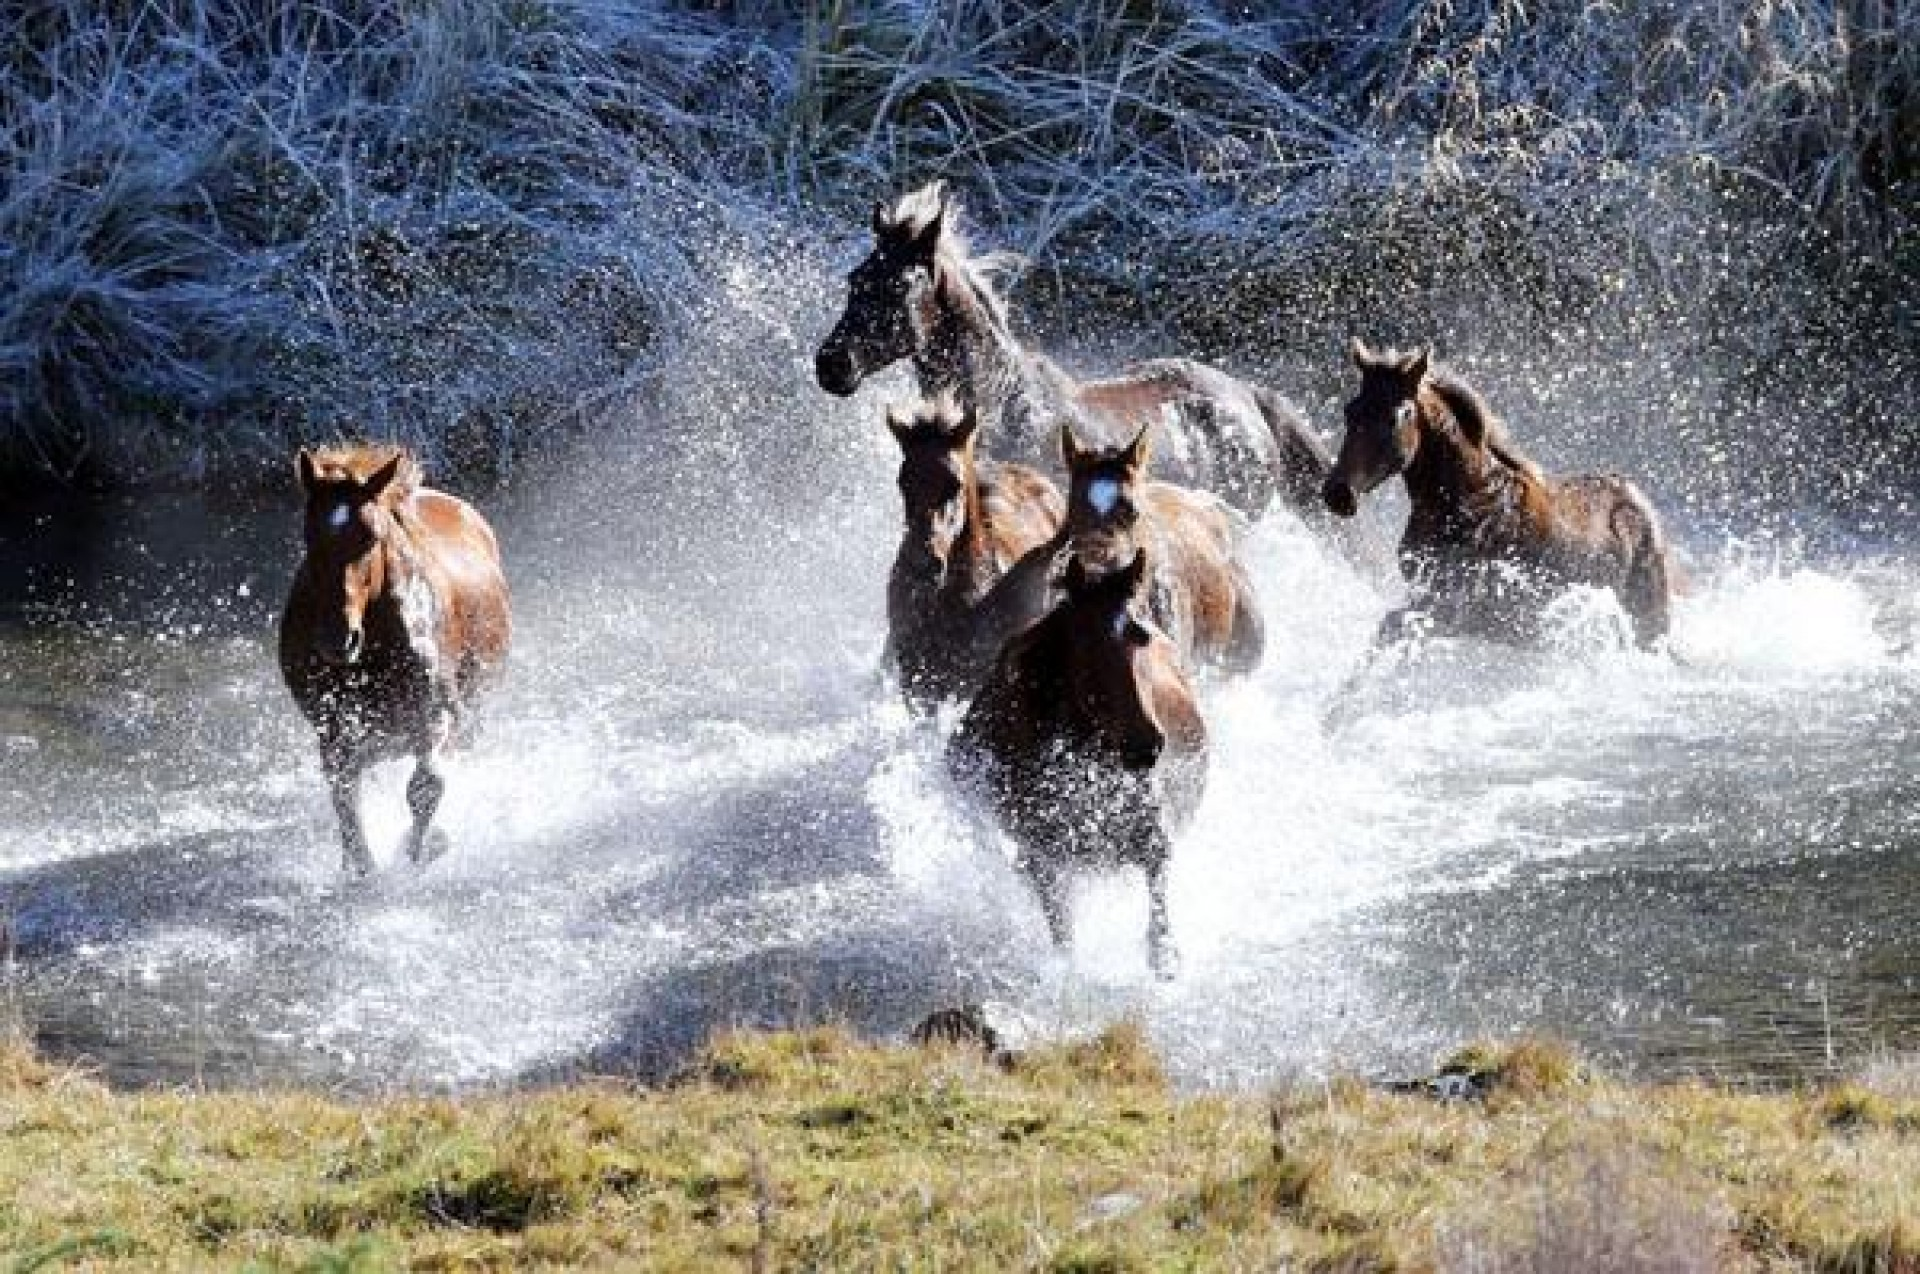 See the Wild Horses at Home in the Tussock Lands of the Kaimanawa Ranges